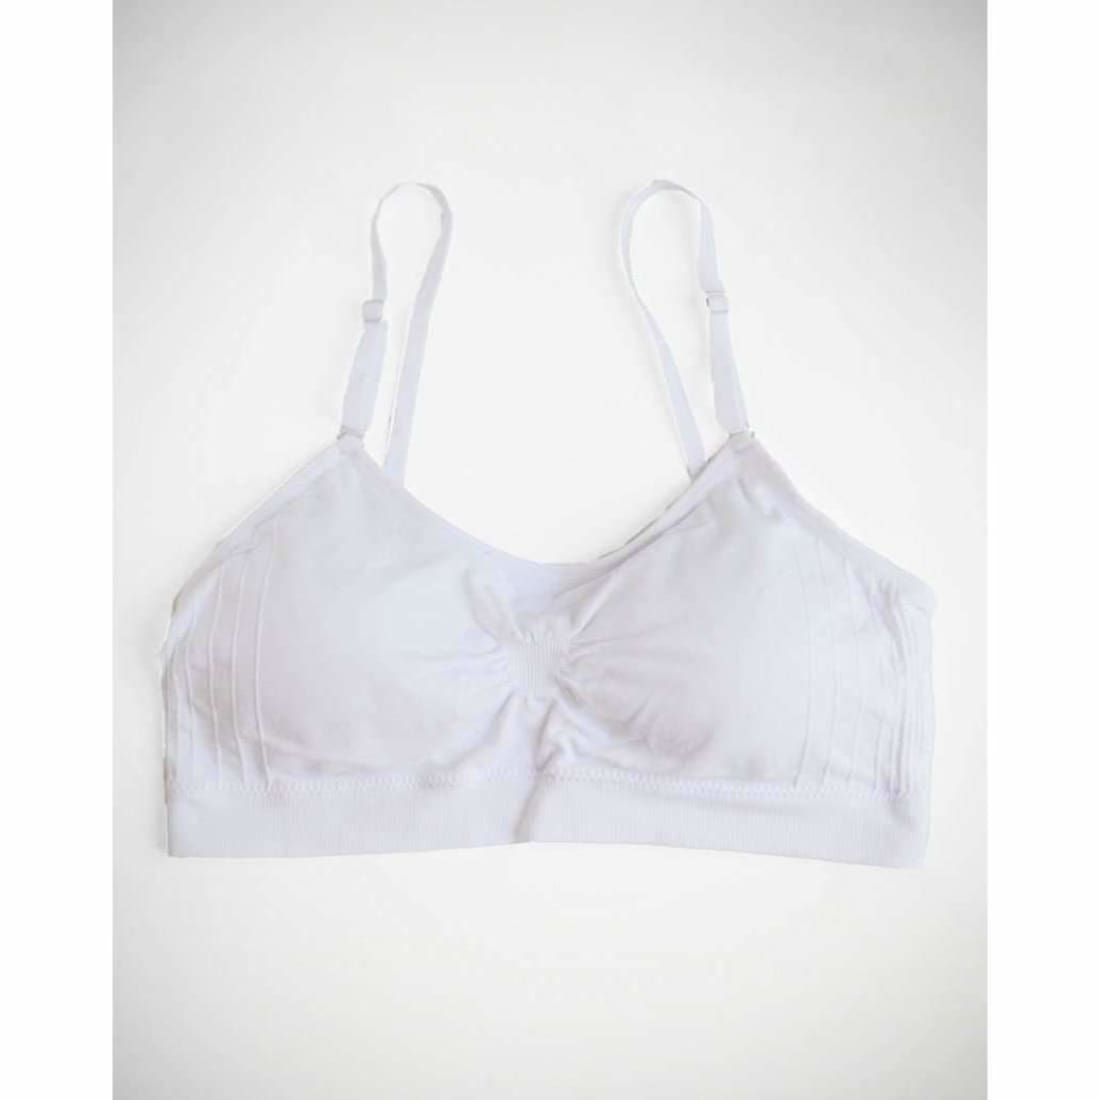 Coobie Womens Scoopneck Bra One Size-White Bras & Bra Sets